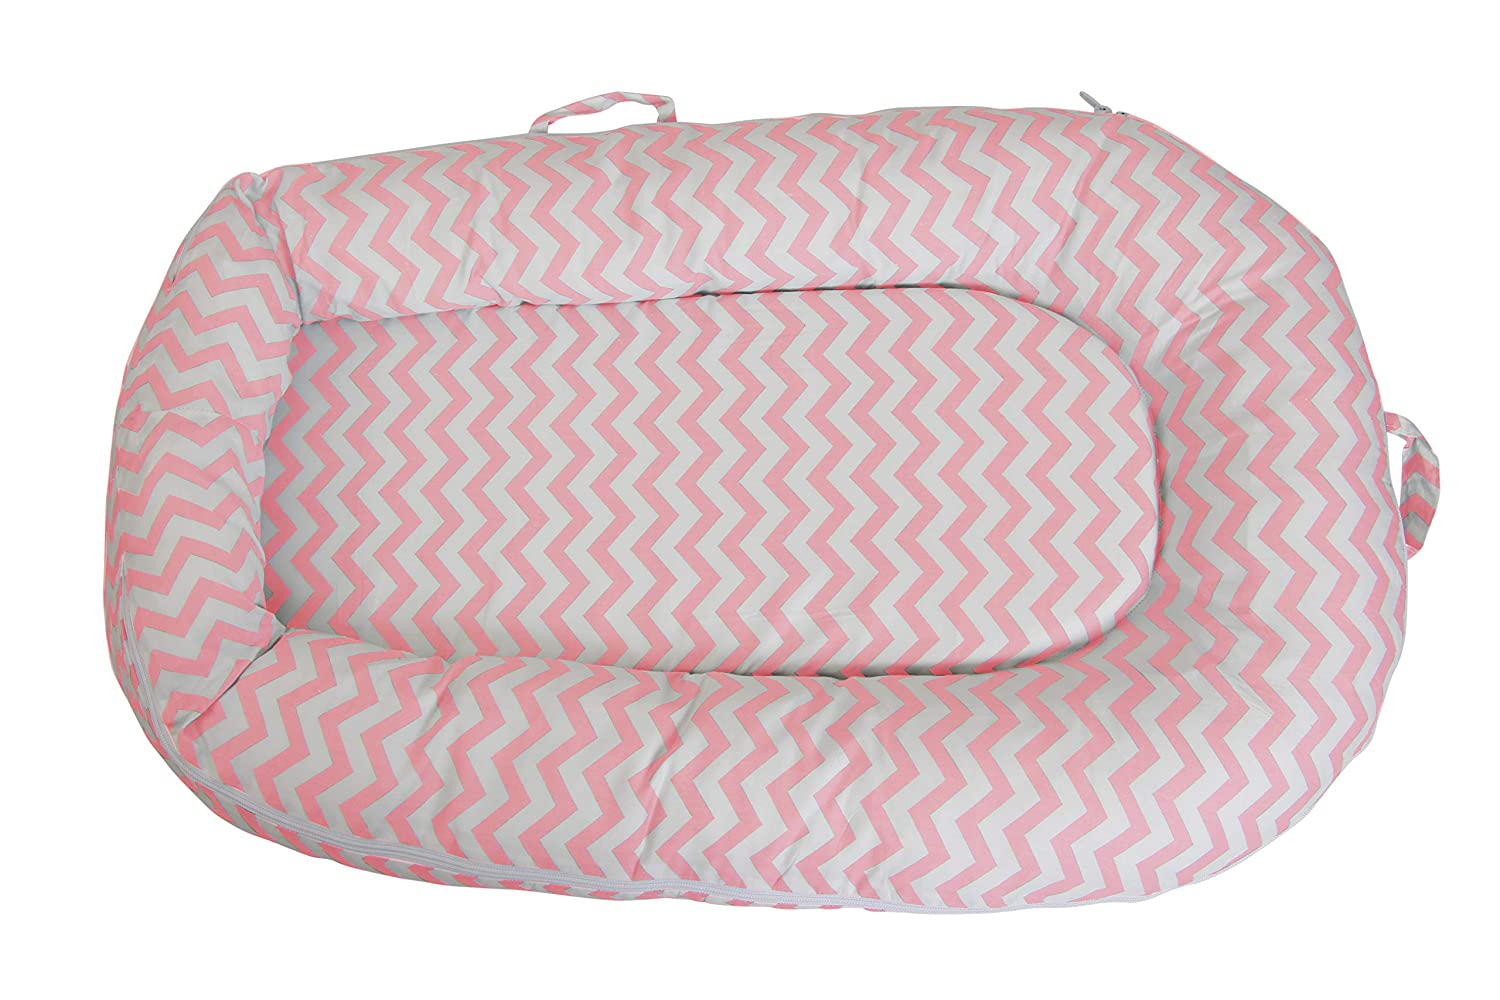 Newborn and Infant Baby Lounger, Portable Bassinet NEST - Perfect for Co Sleeping - Suitable from 0-10 Months - Super Soft and Breathable - Great Gift Idea - Make Travel EZ (Pink (Chevron)) Massive Deals 4 Babies